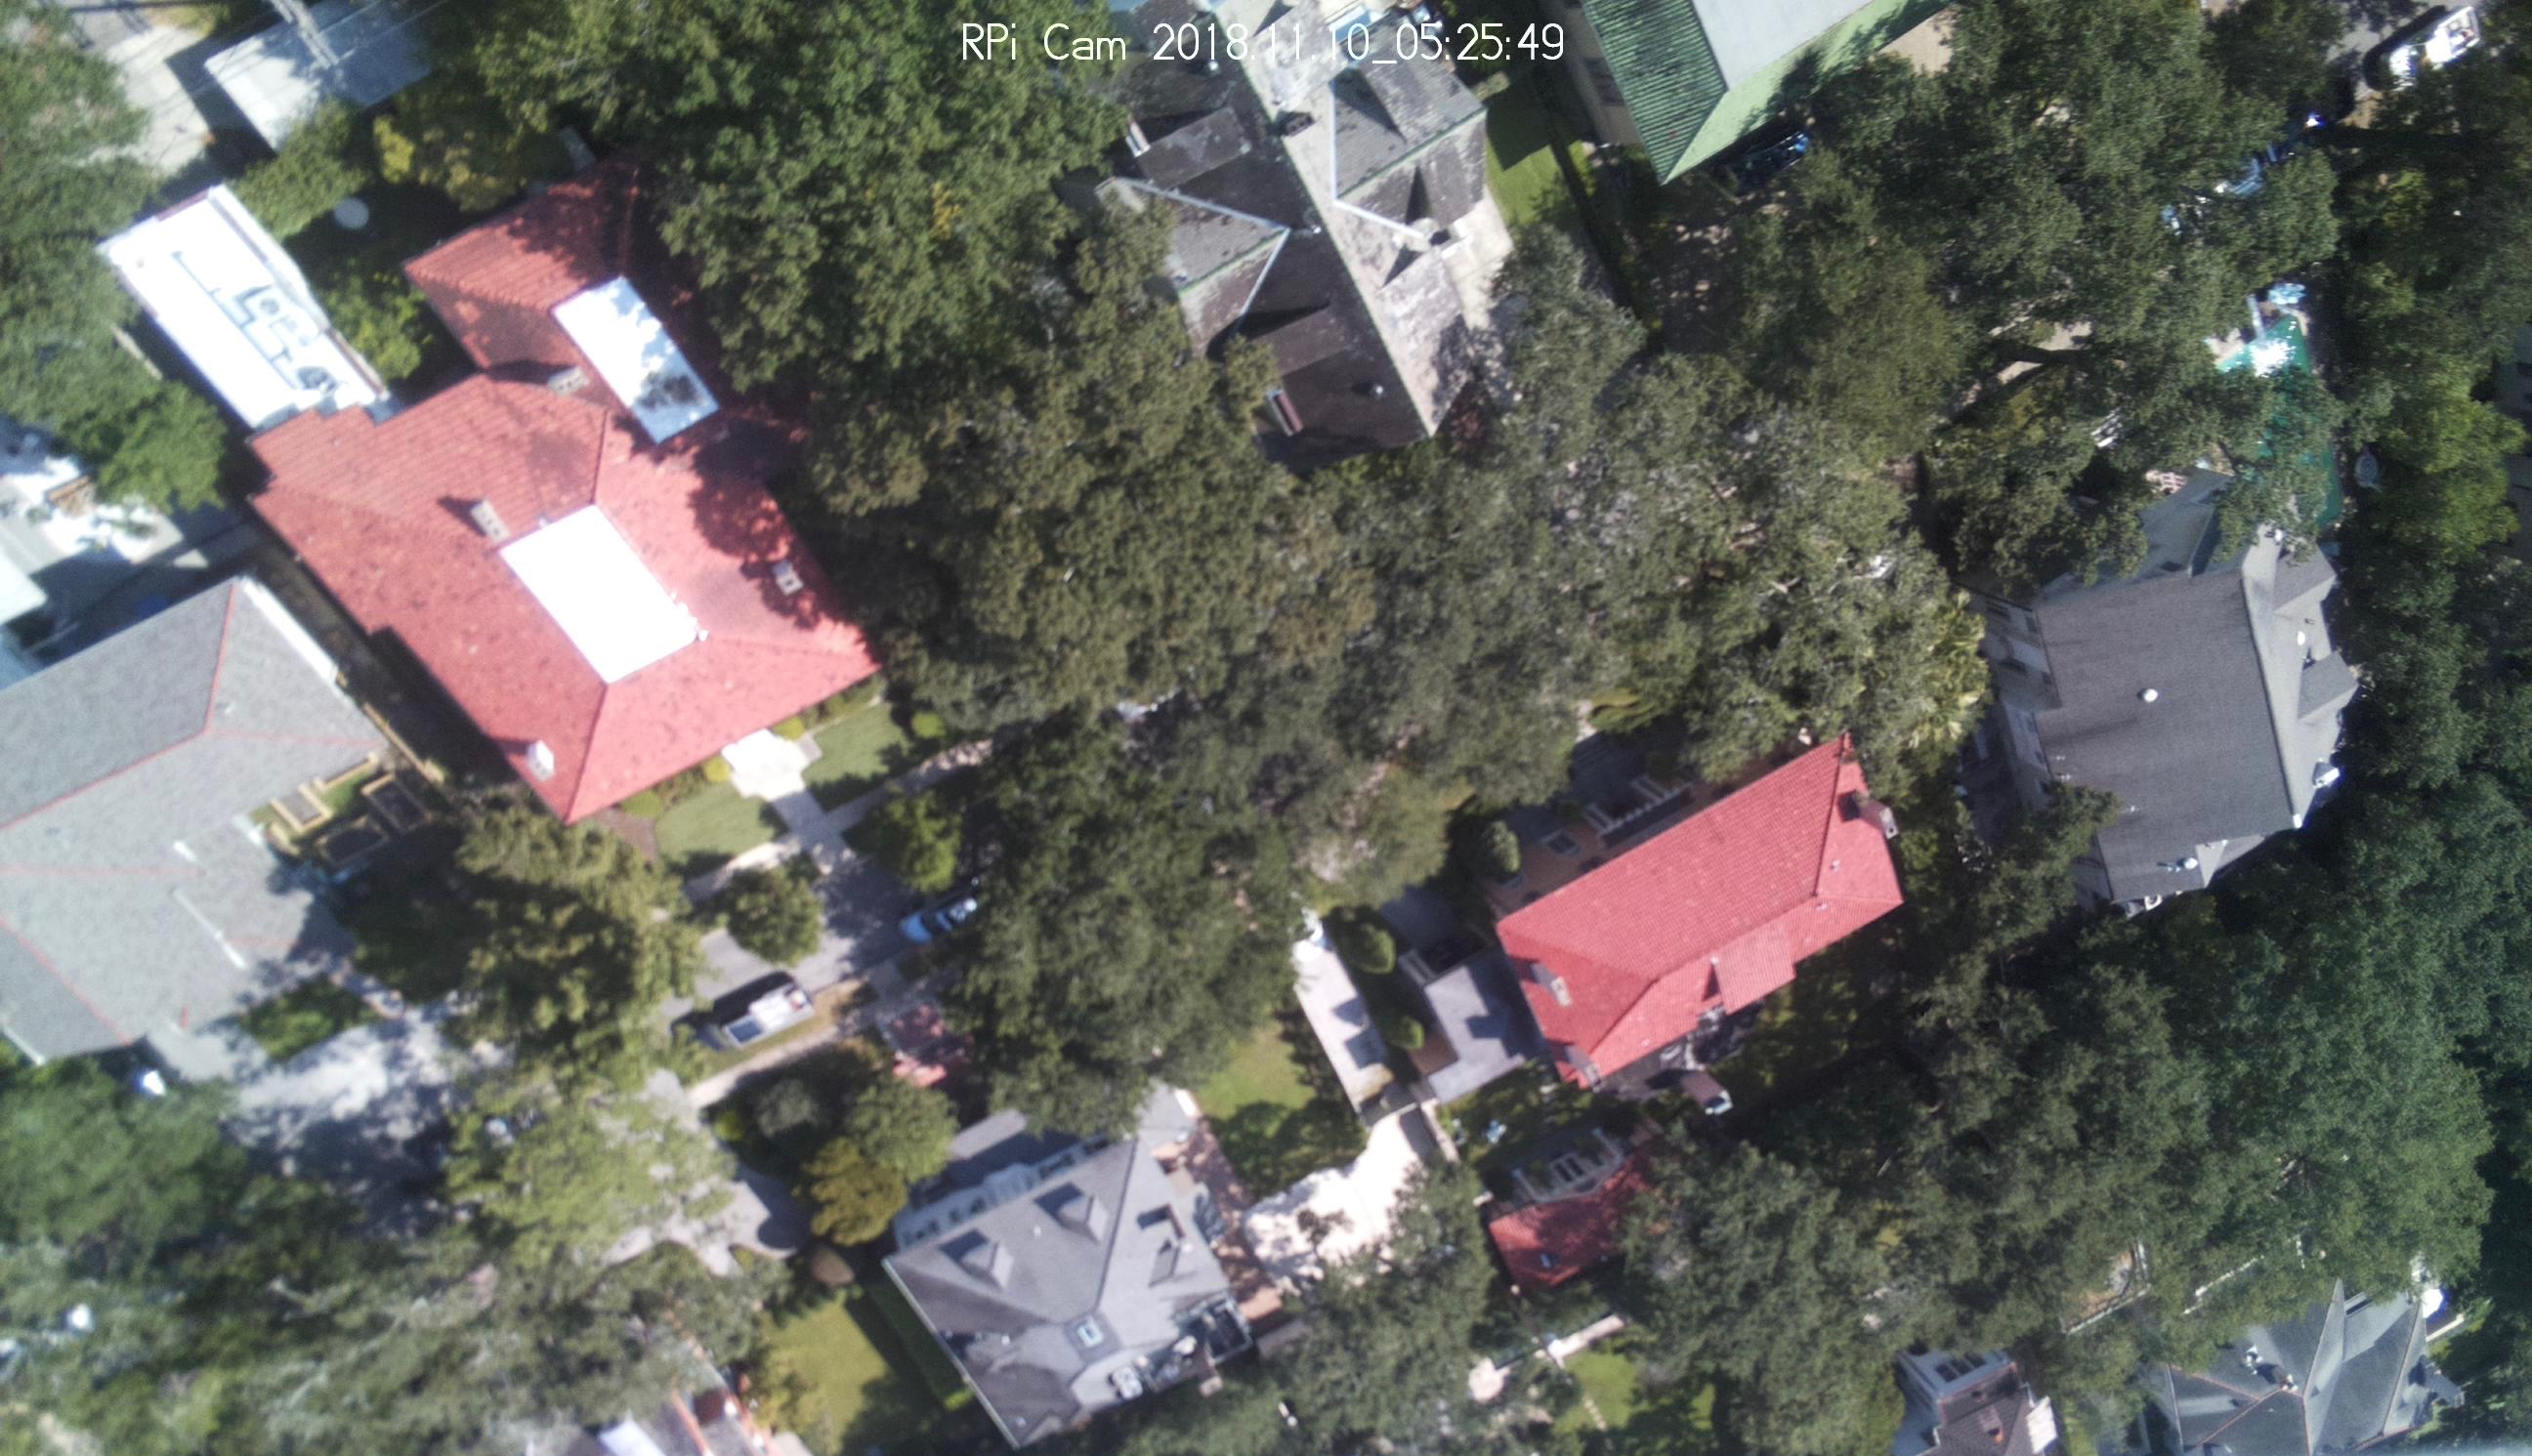 Lusher Charter School Mapping-Street Observation